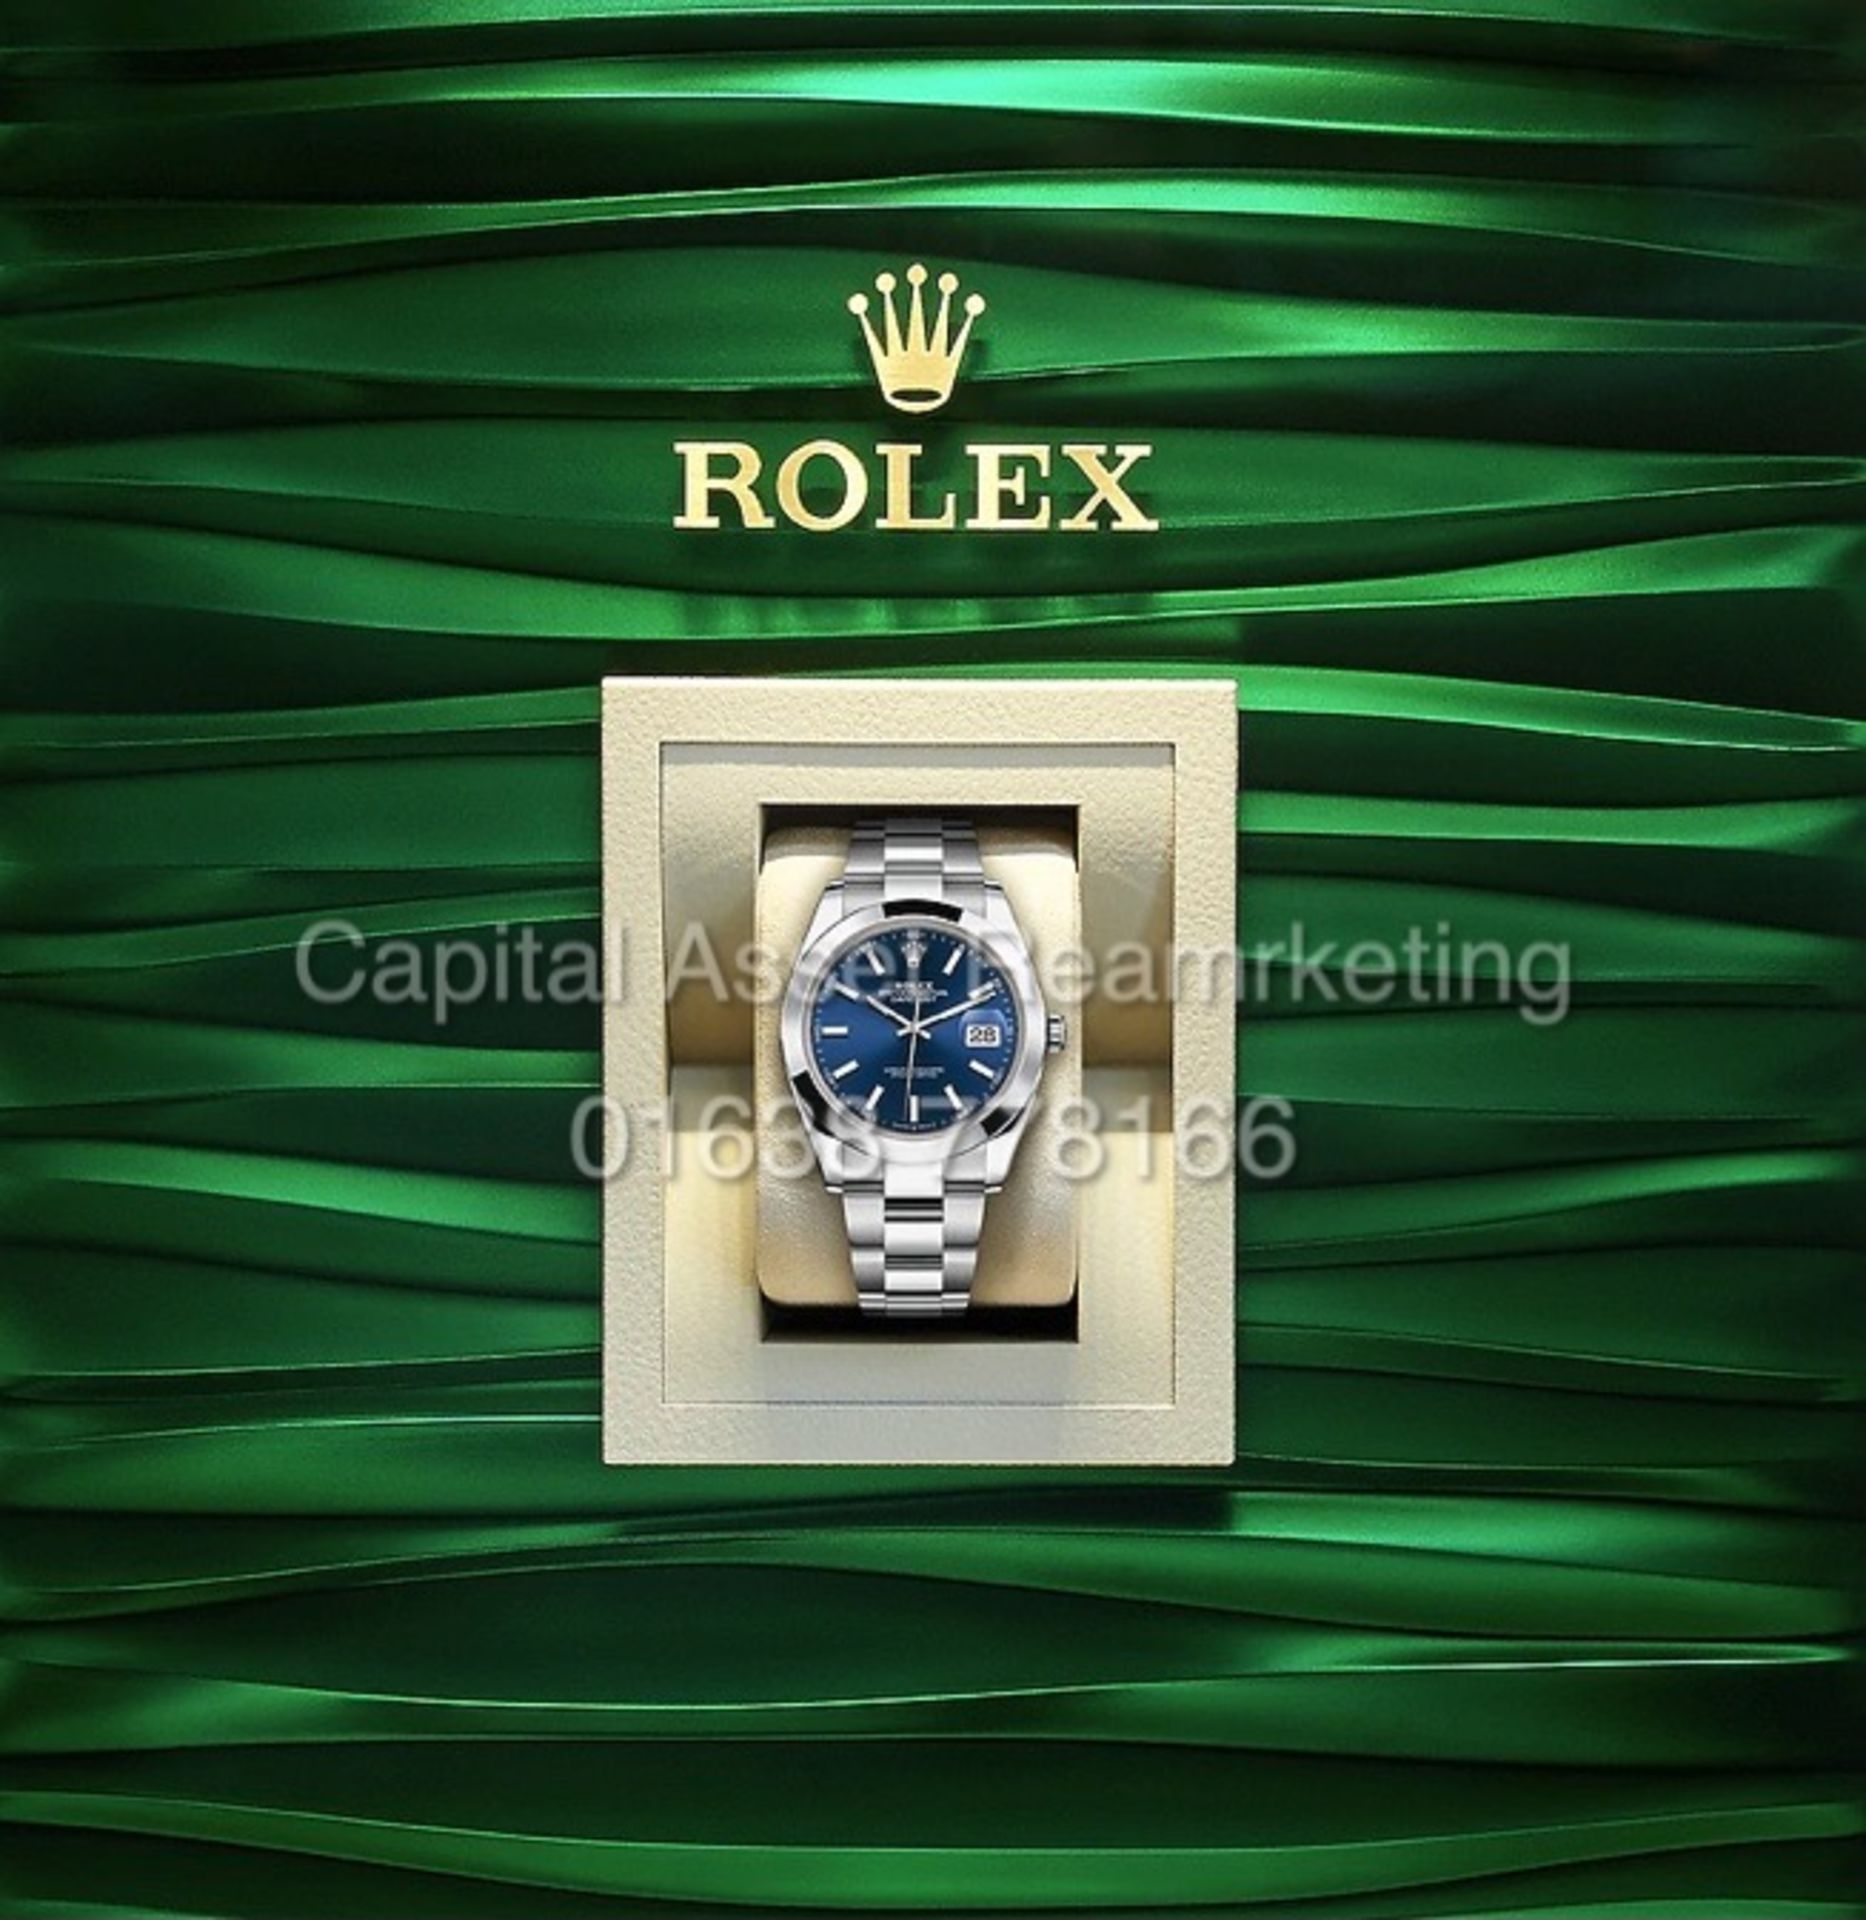 """On Sale ROLEX DATEJUST 41mm """"OYSTERSTEEL"""" BRAND NEW / UNWORN """"BRIGHT BLUE DIAL"""" ALL STEEL - Image 2 of 2"""